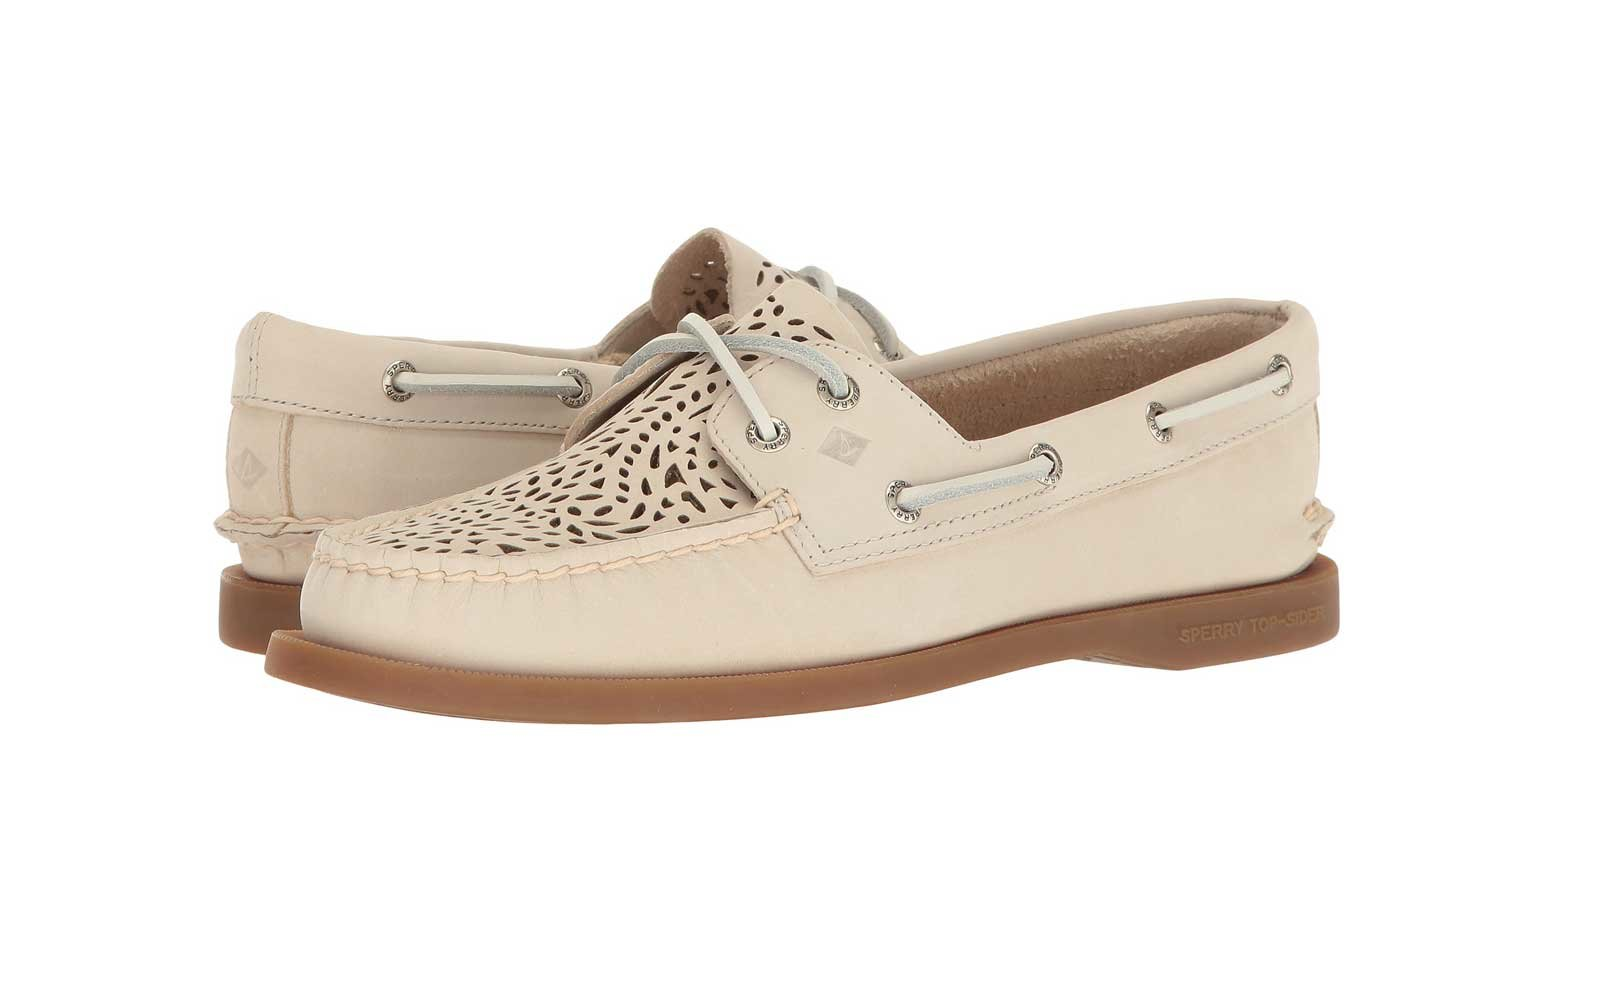 Best Walking Shoes for Travel: Sperry